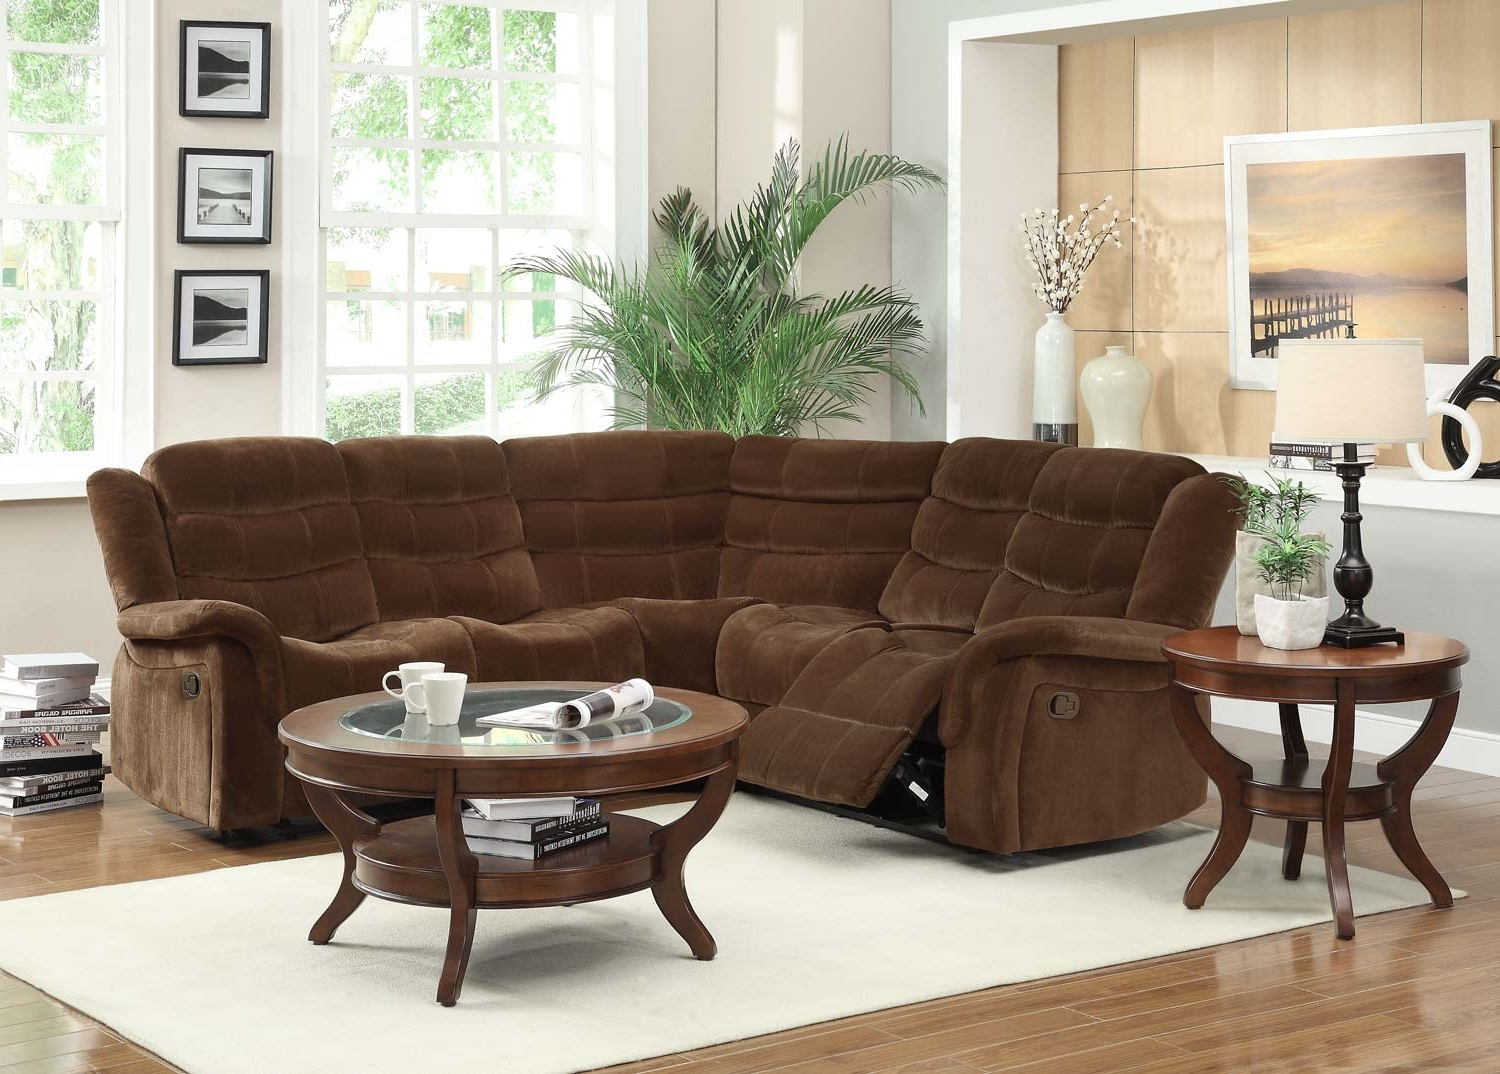 2018 Chocolate Brown Sectional Sofas In Homelegance Norton Reclining Sectional Sofa Set – Chocolate (View 2 of 15)